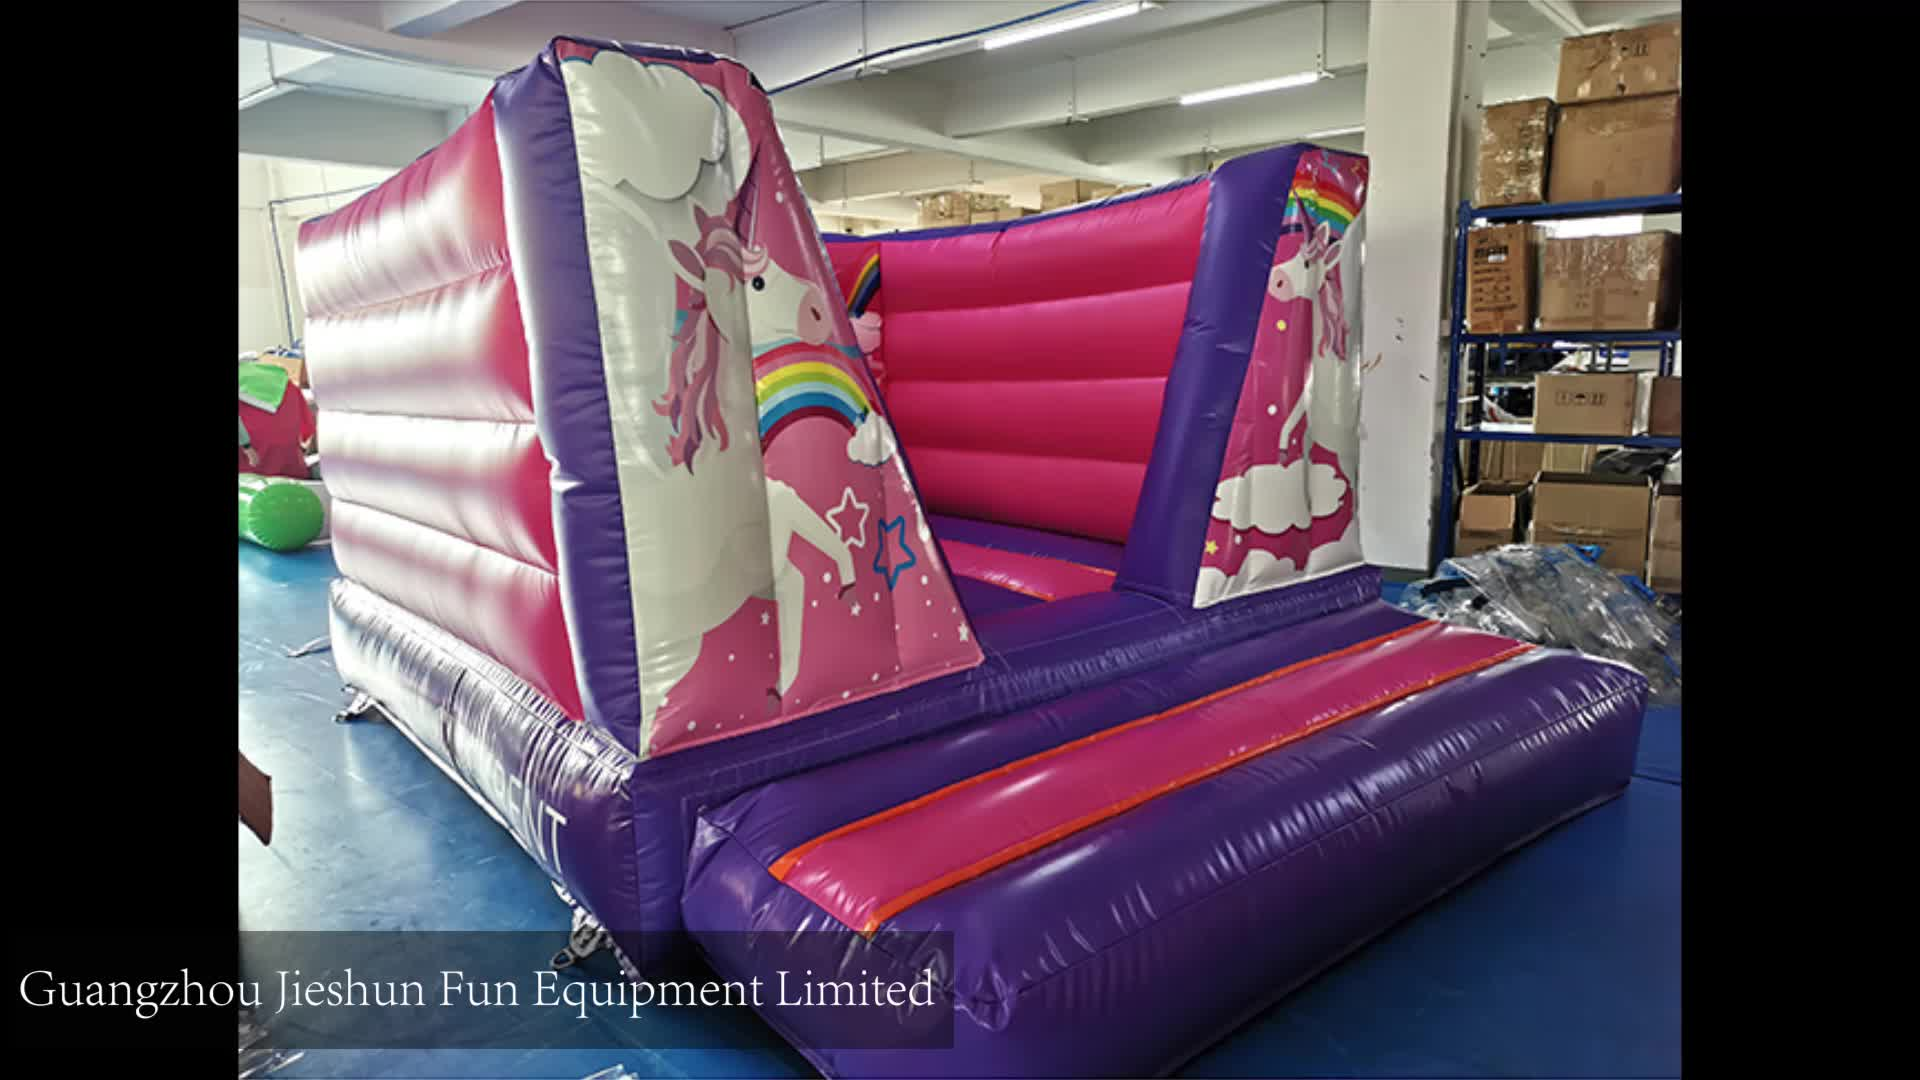 Hot sale PVC Purple unicorn inflatable jumping castle inflatable bounce house BS EN14960 standard for fun